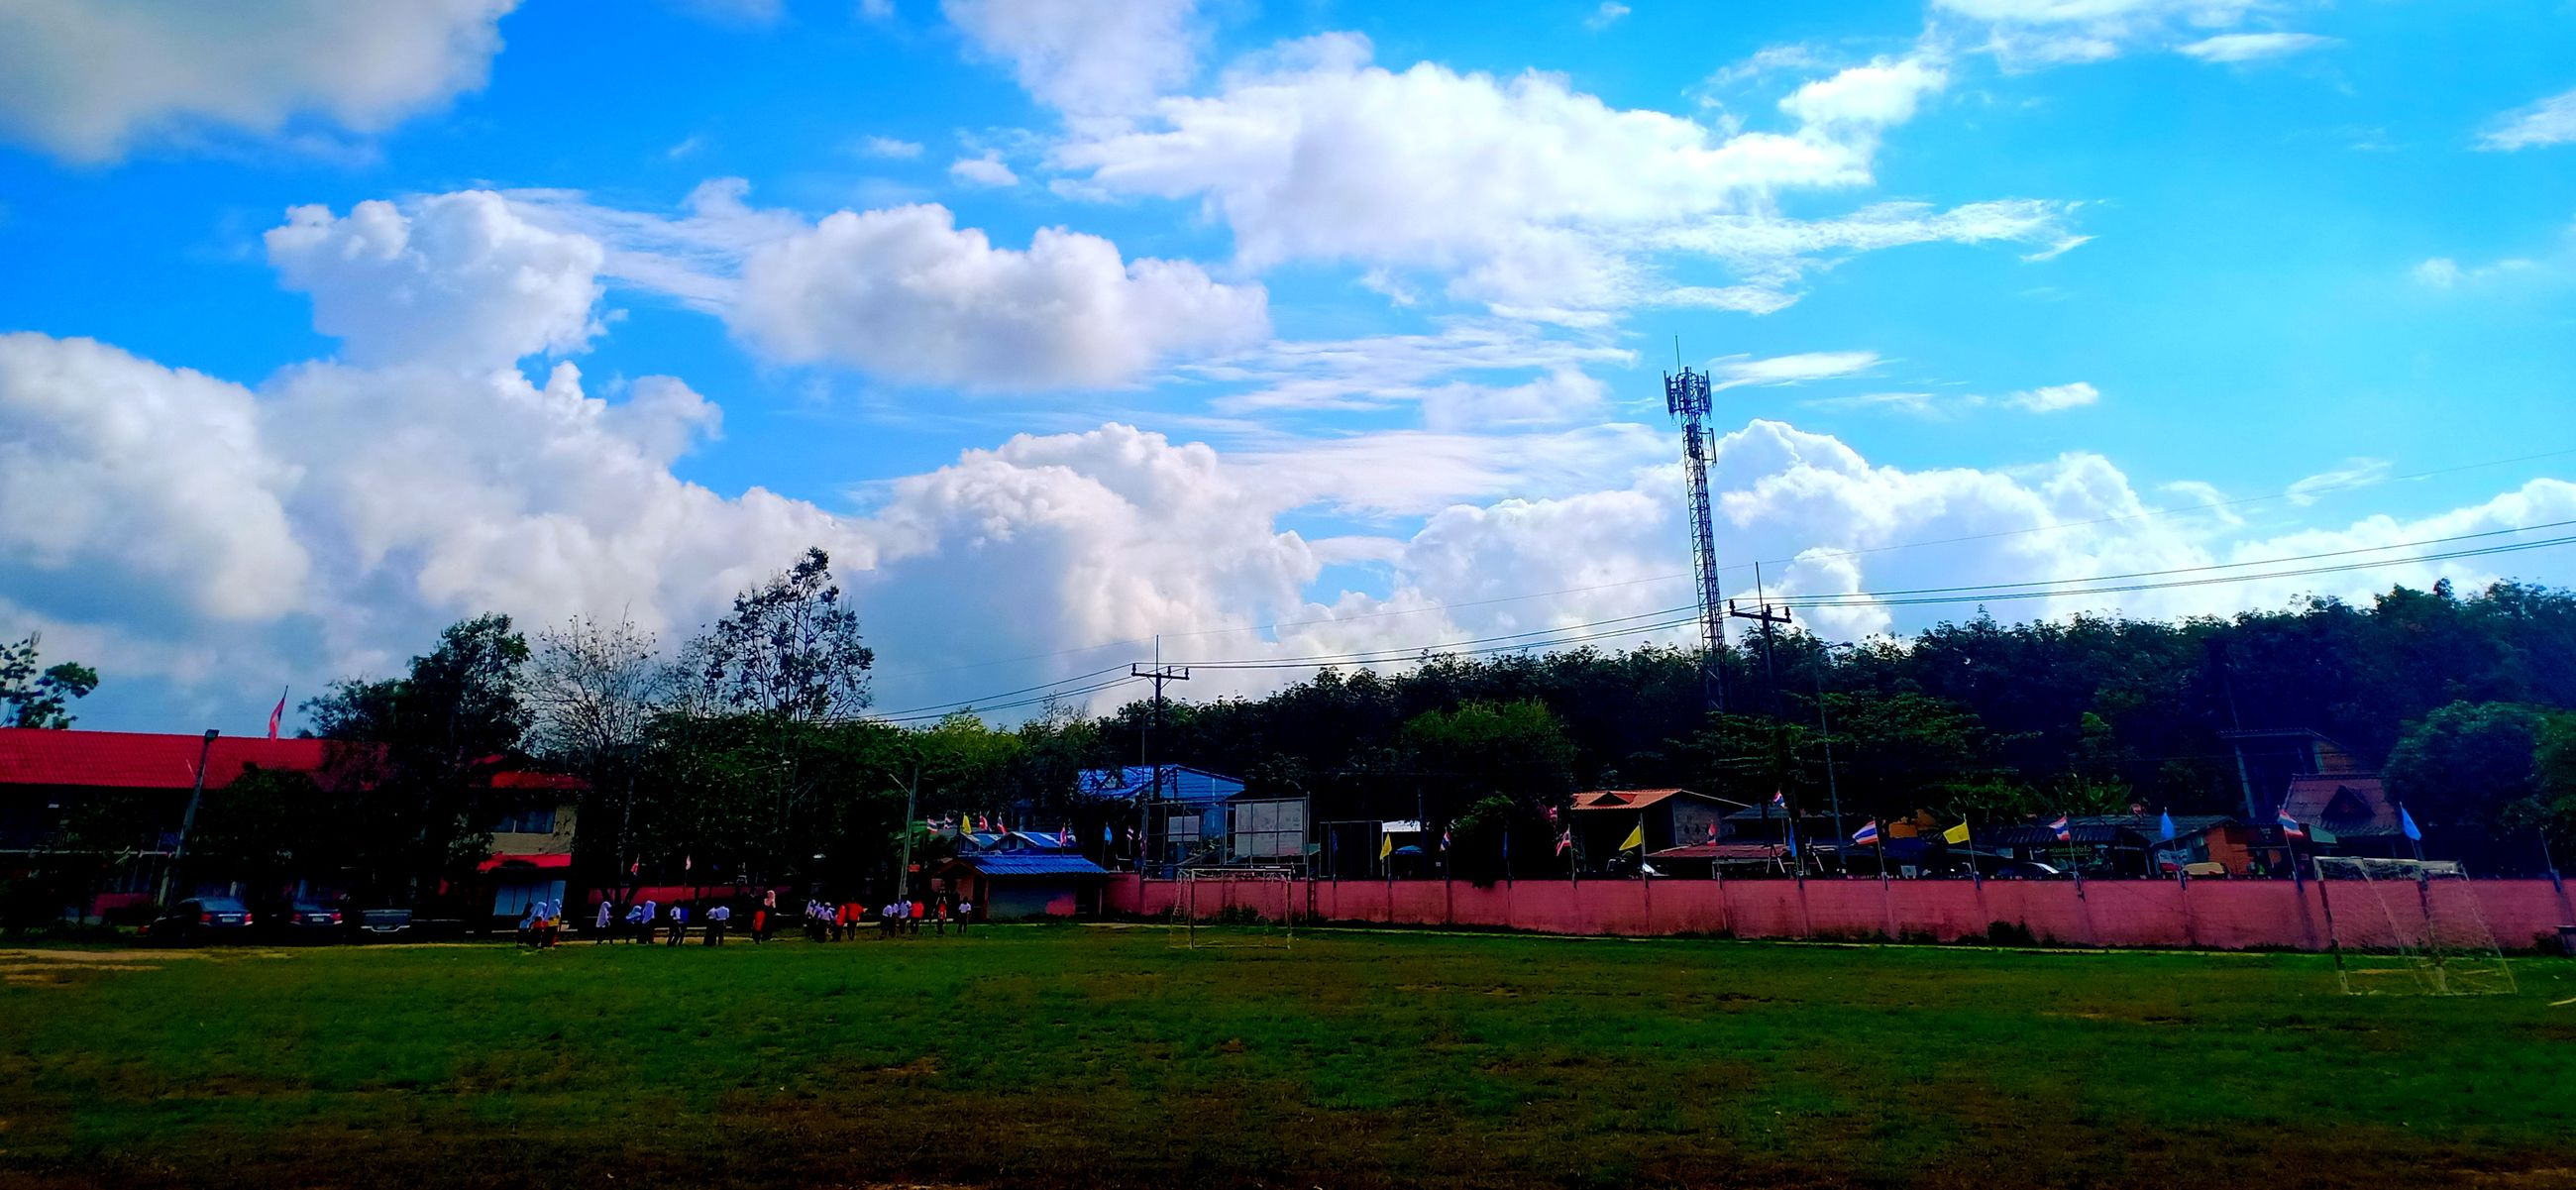 cloud - sky, sky, plant, grass, architecture, building exterior, tree, built structure, nature, land, field, day, landscape, environment, outdoors, incidental people, group of people, sport, green color, building